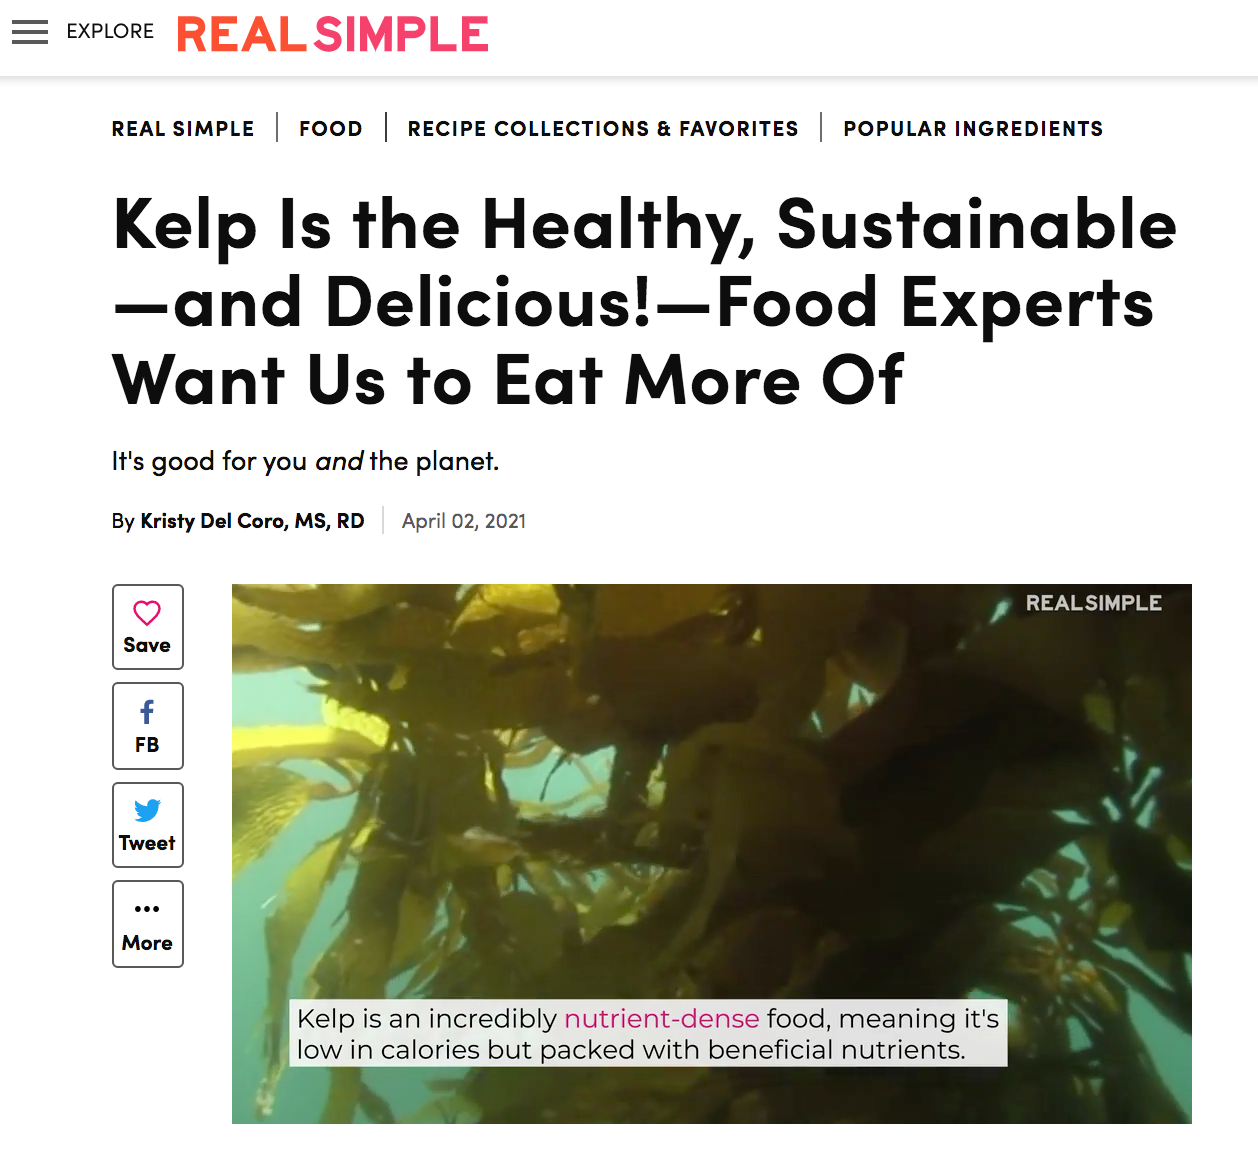 Real Simple Magazine: Kelp Is the Healthy, Sustainable—and Delicious!—Food Experts Want Us to Eat More Of